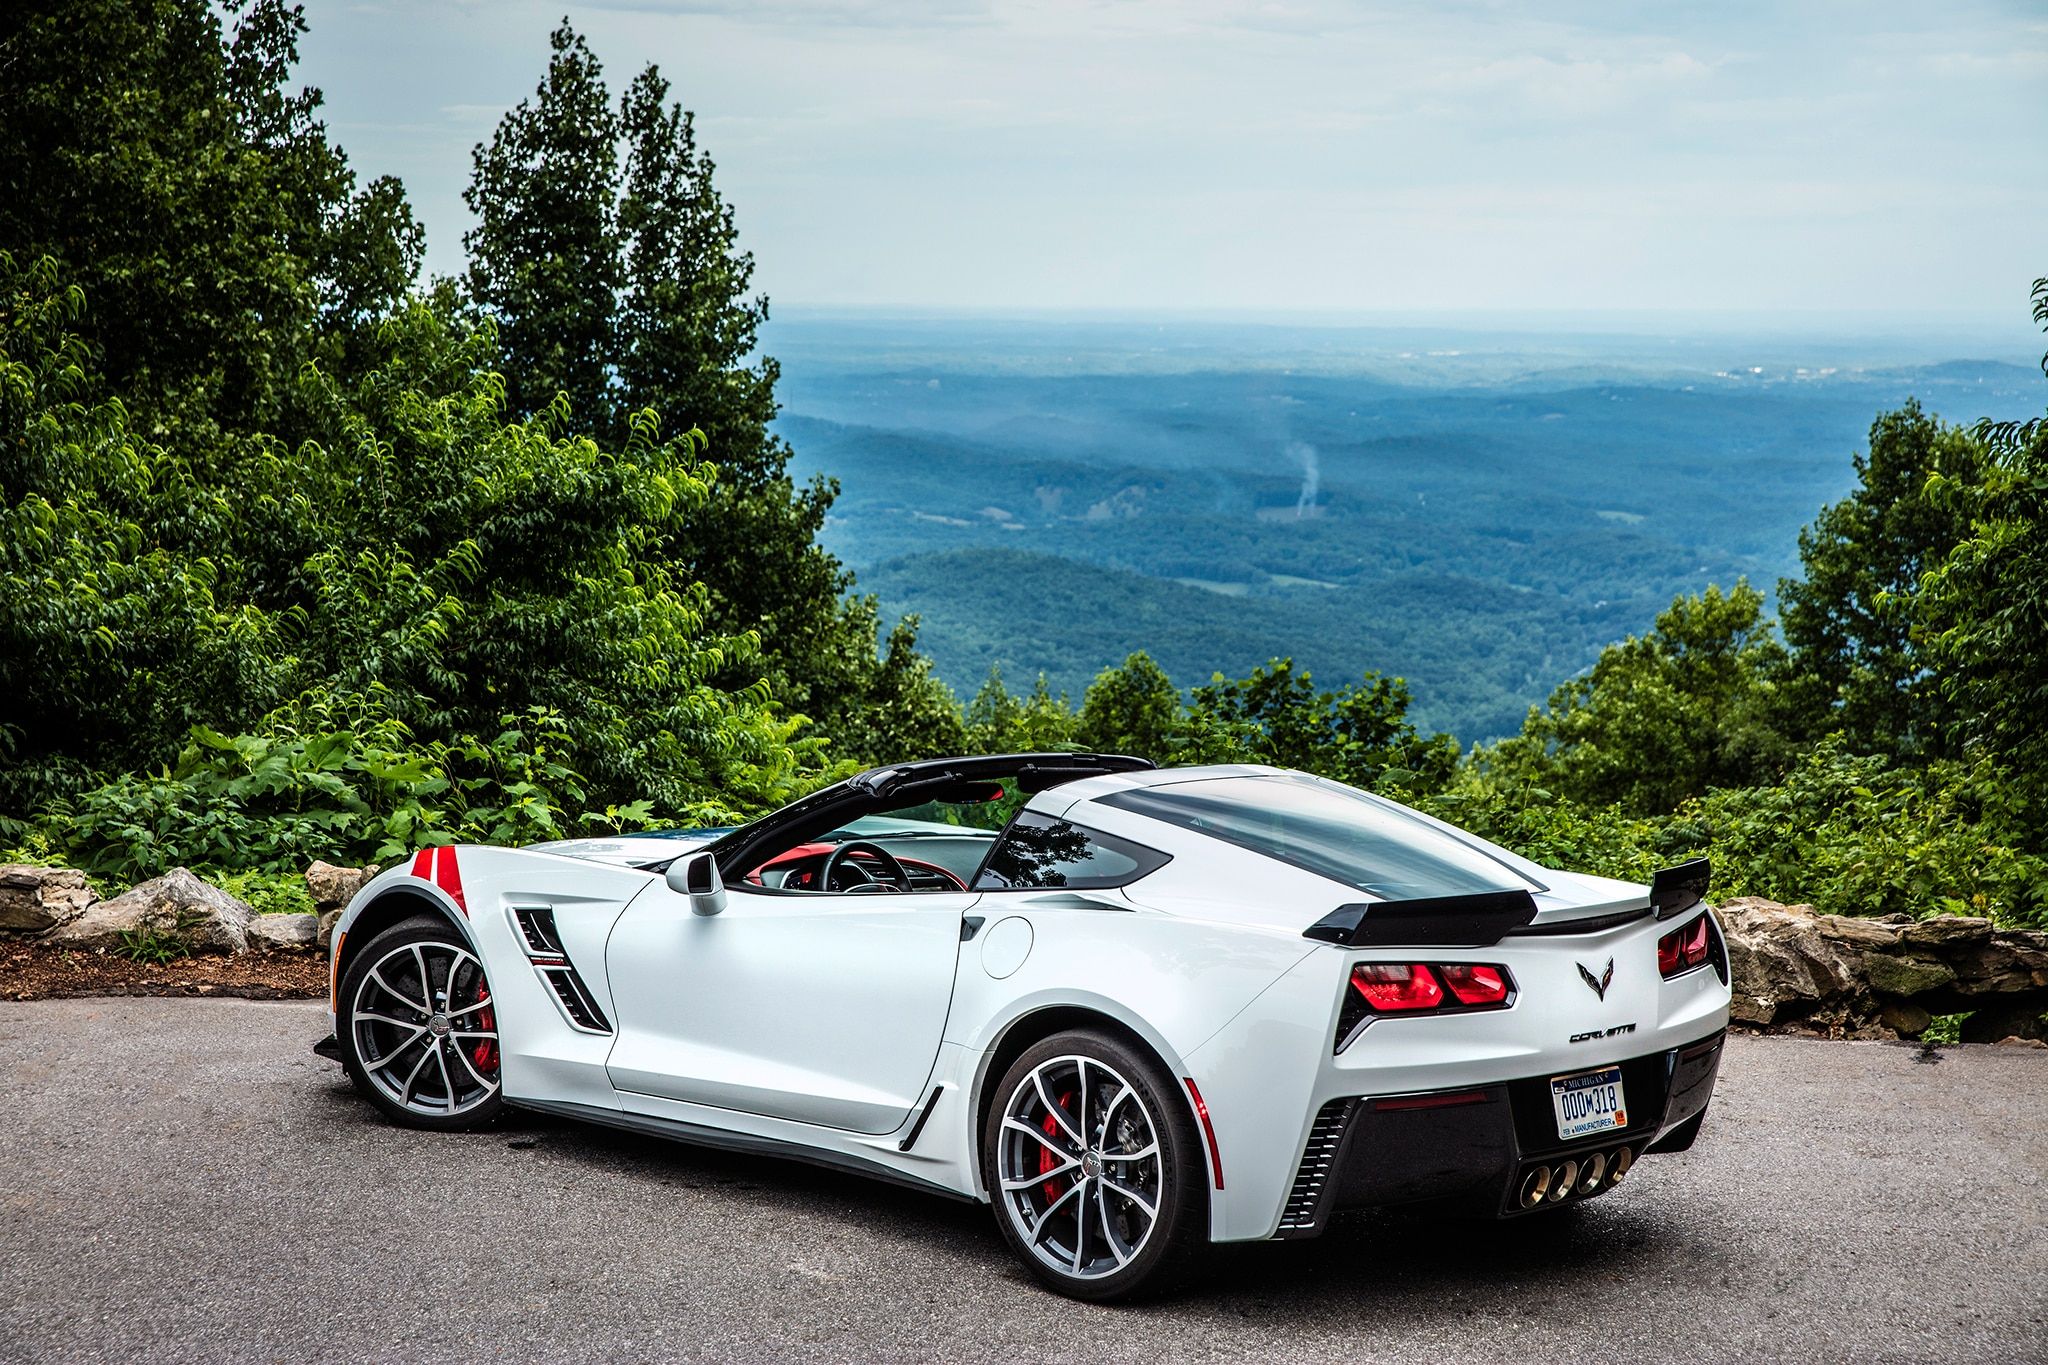 2017 chevrolet corvette grand sport first drive. Black Bedroom Furniture Sets. Home Design Ideas